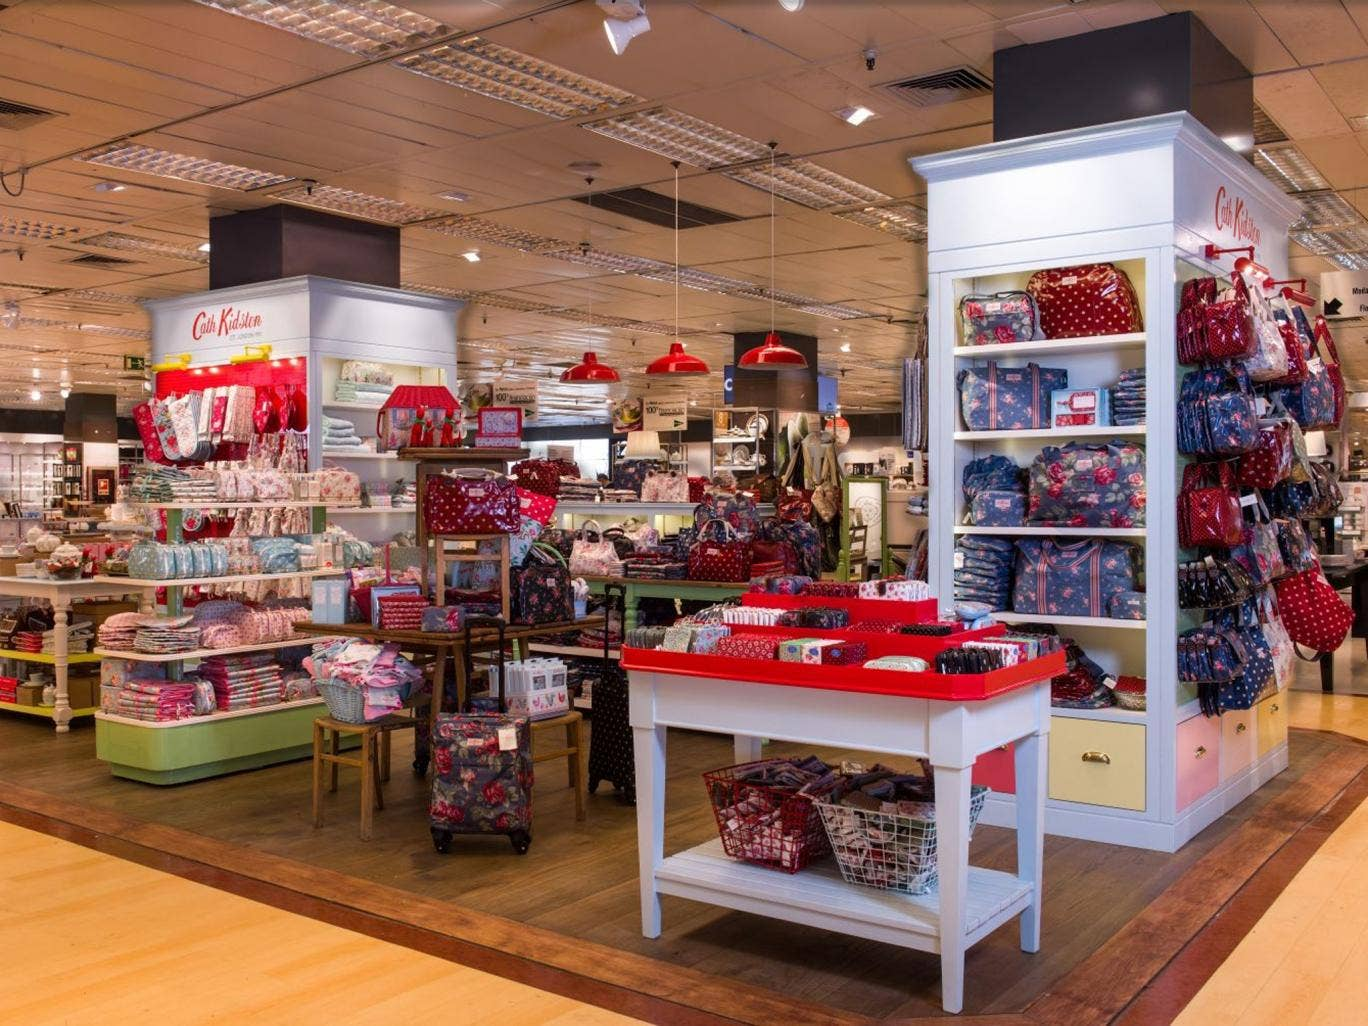 British sales at Cath Kidston rose 21 per cent in the year to March